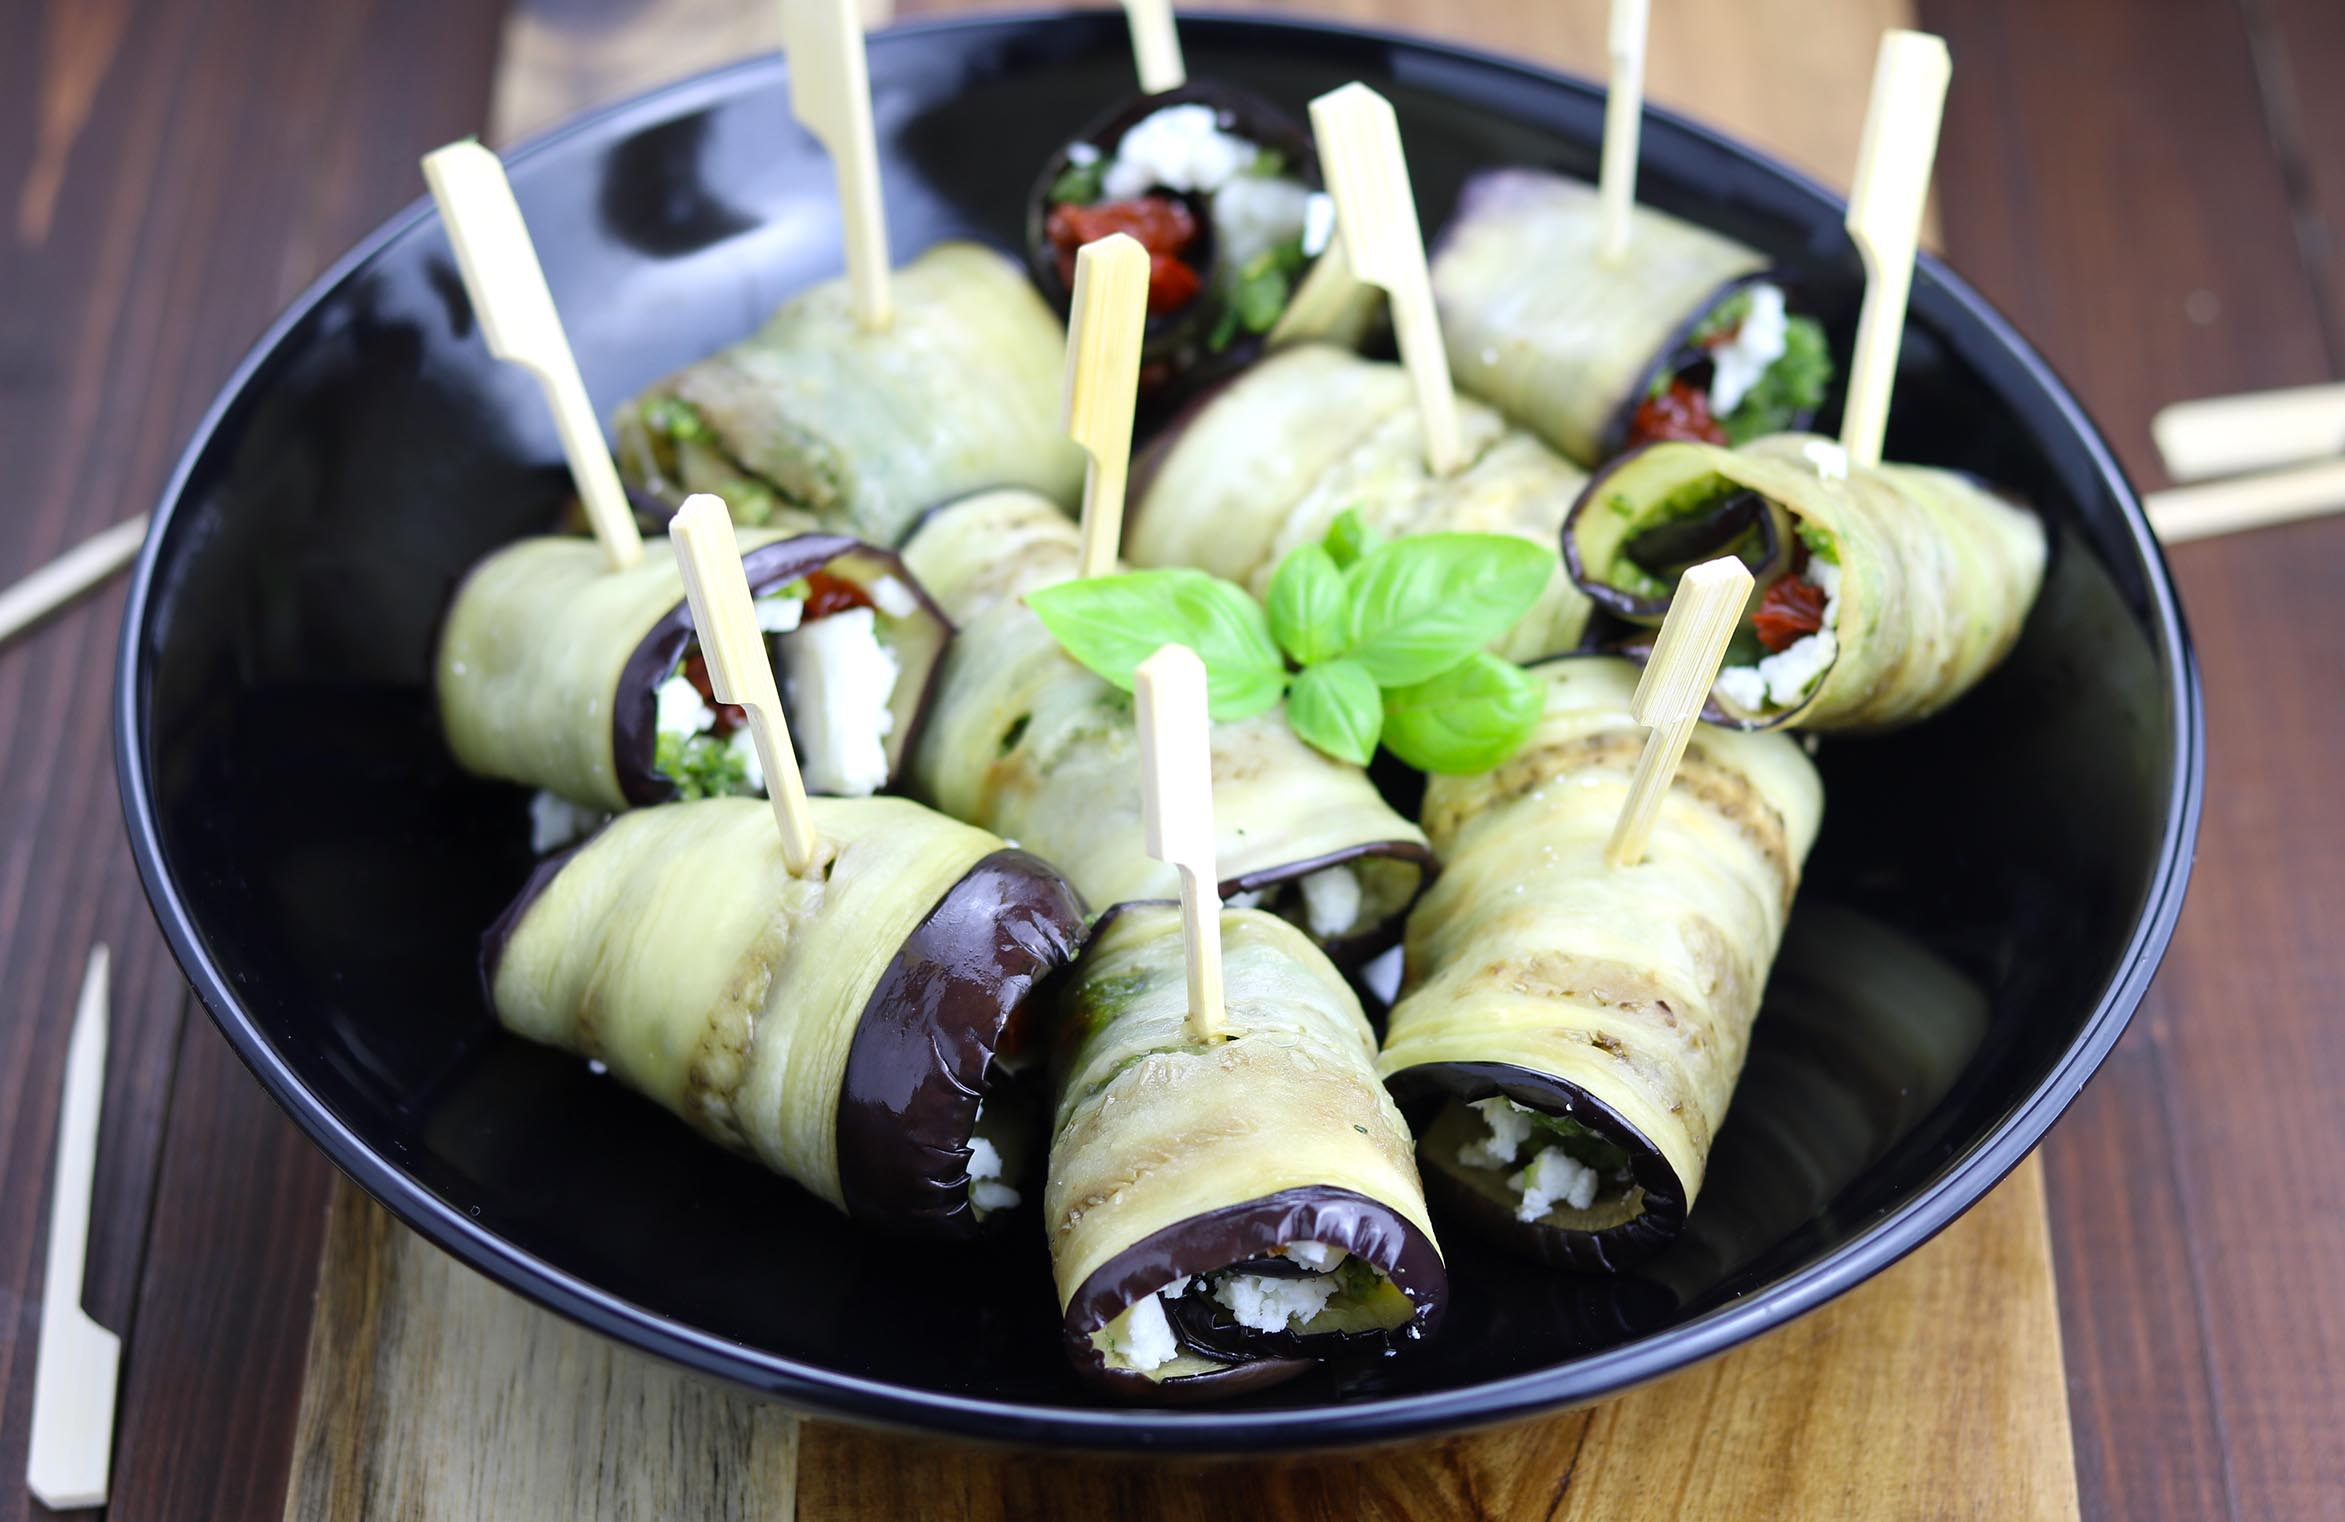 Aubergine Rolls with Feta & Sun Dried Tomatoes - thelastfoodblog.com